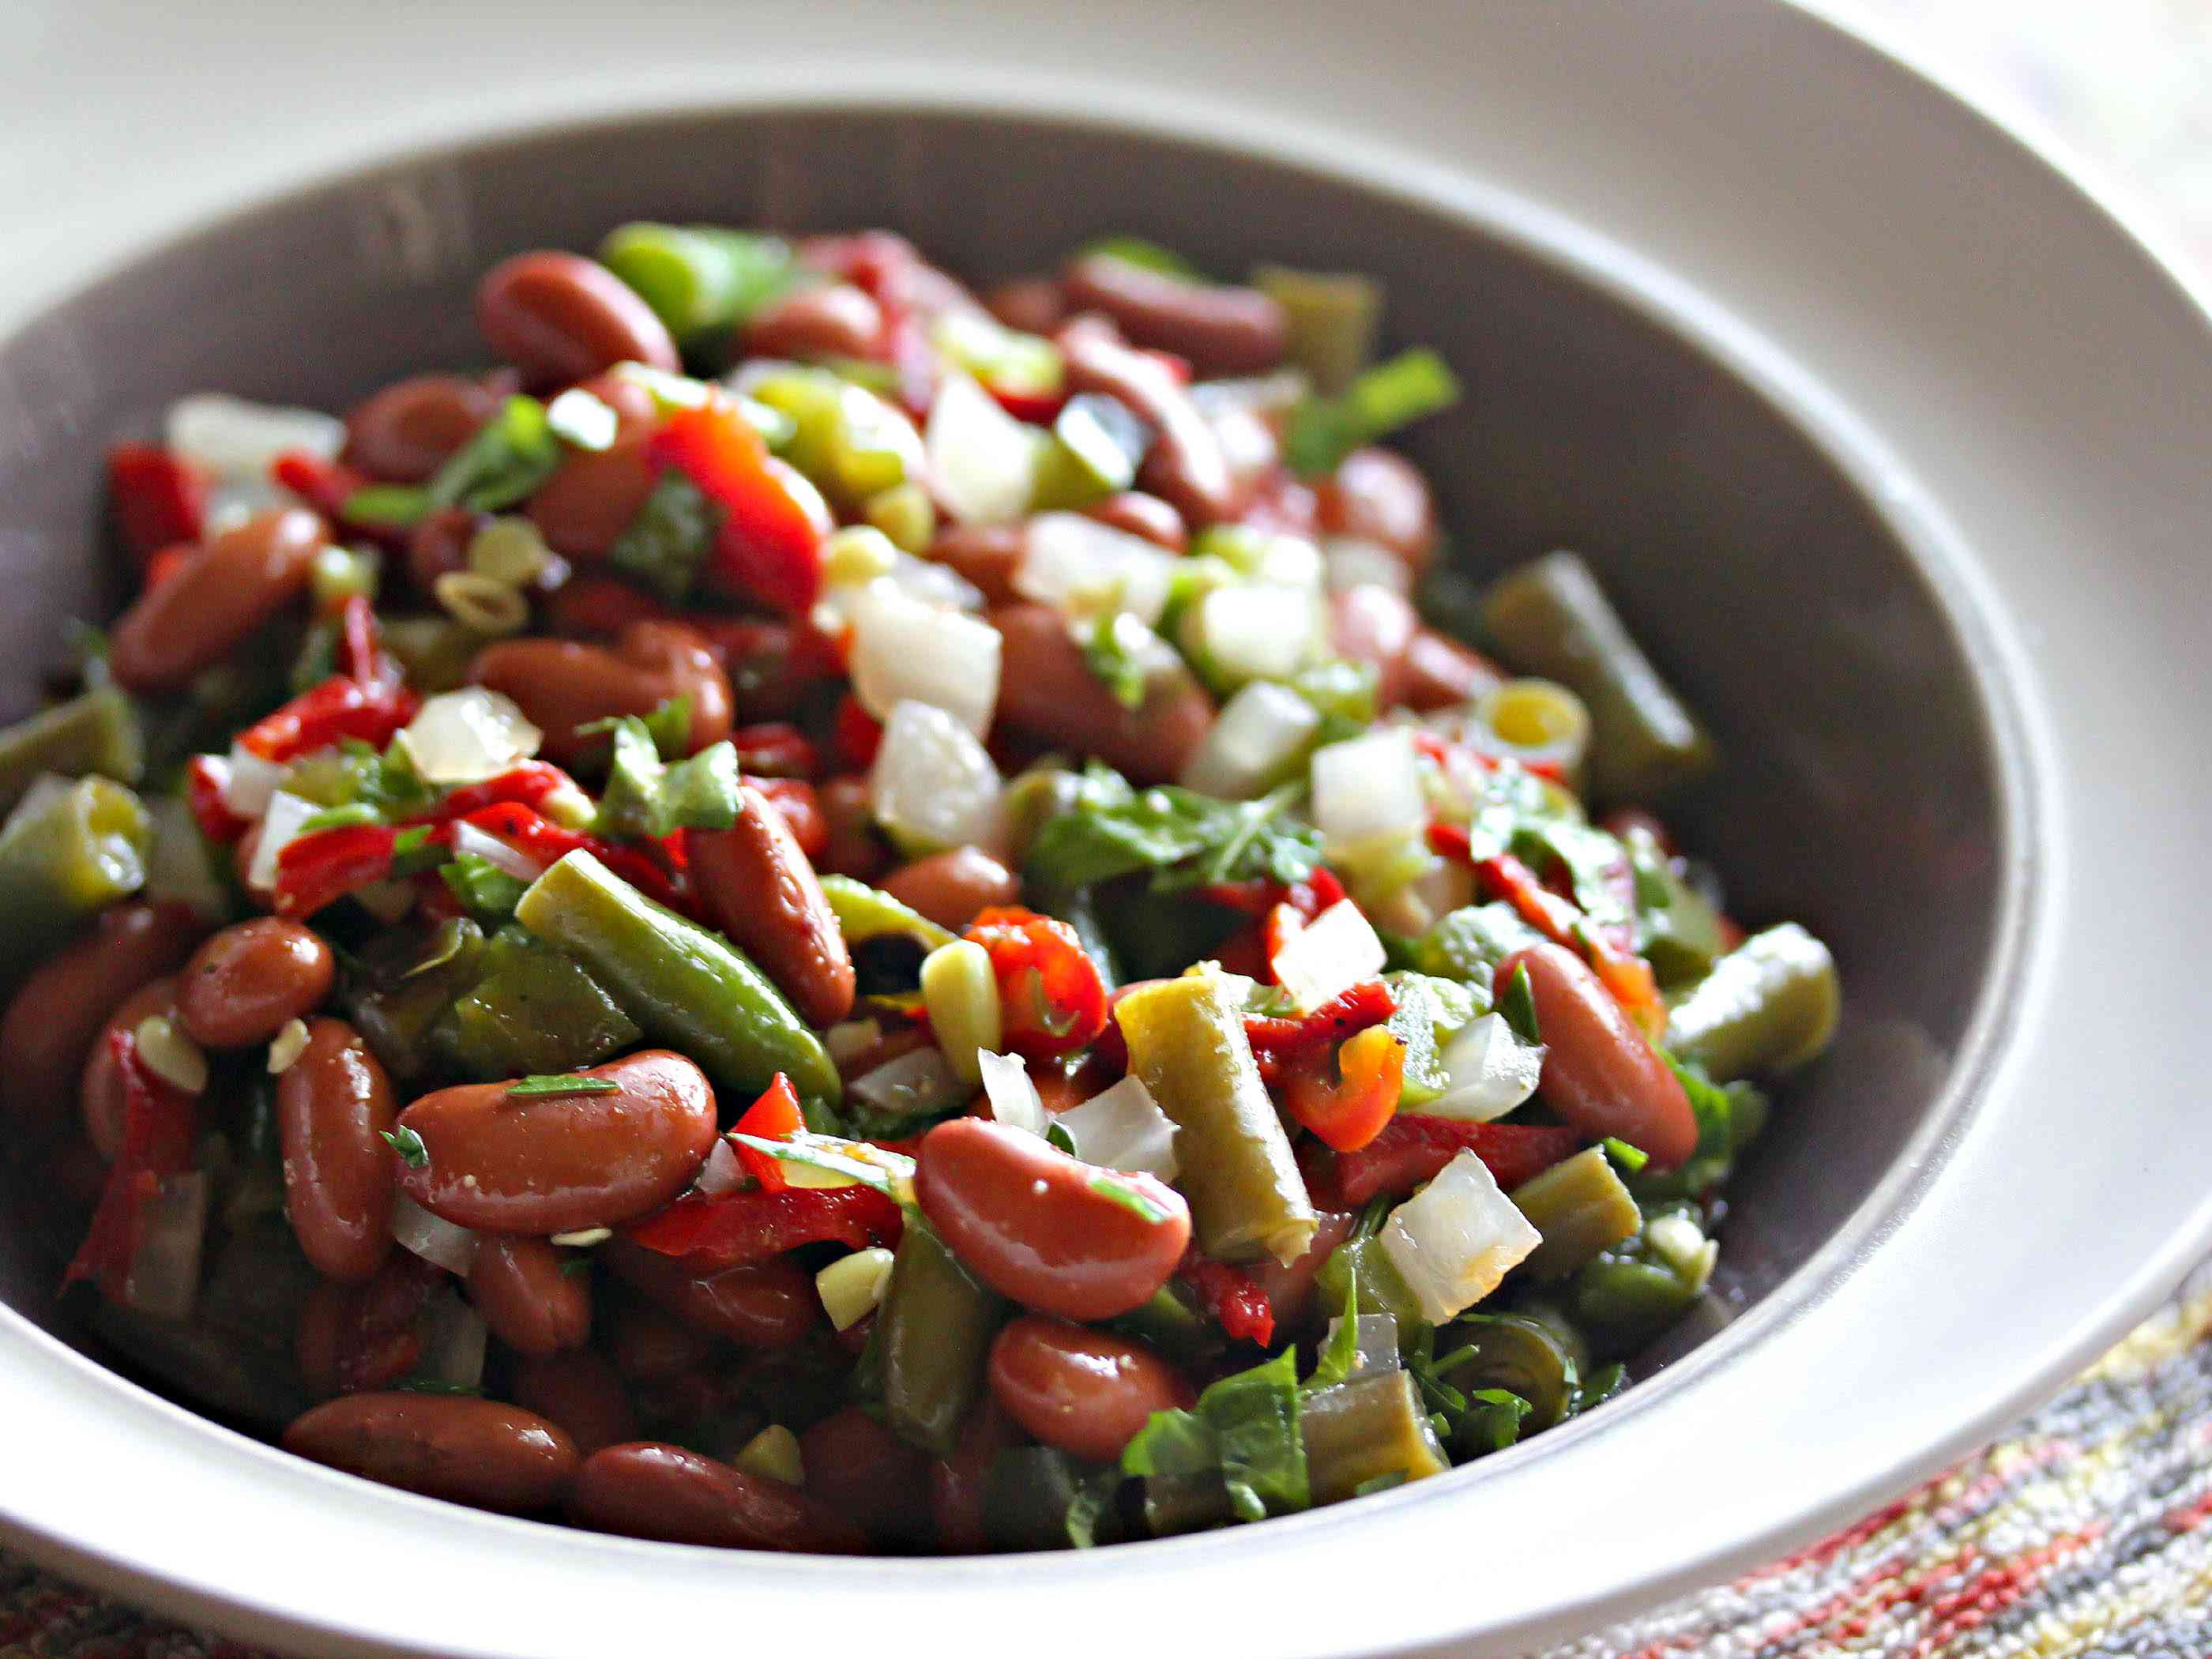 060614-295001-Serious-Eats-Bean-Salads-Two-Kidney-Two-Pepper.jpg